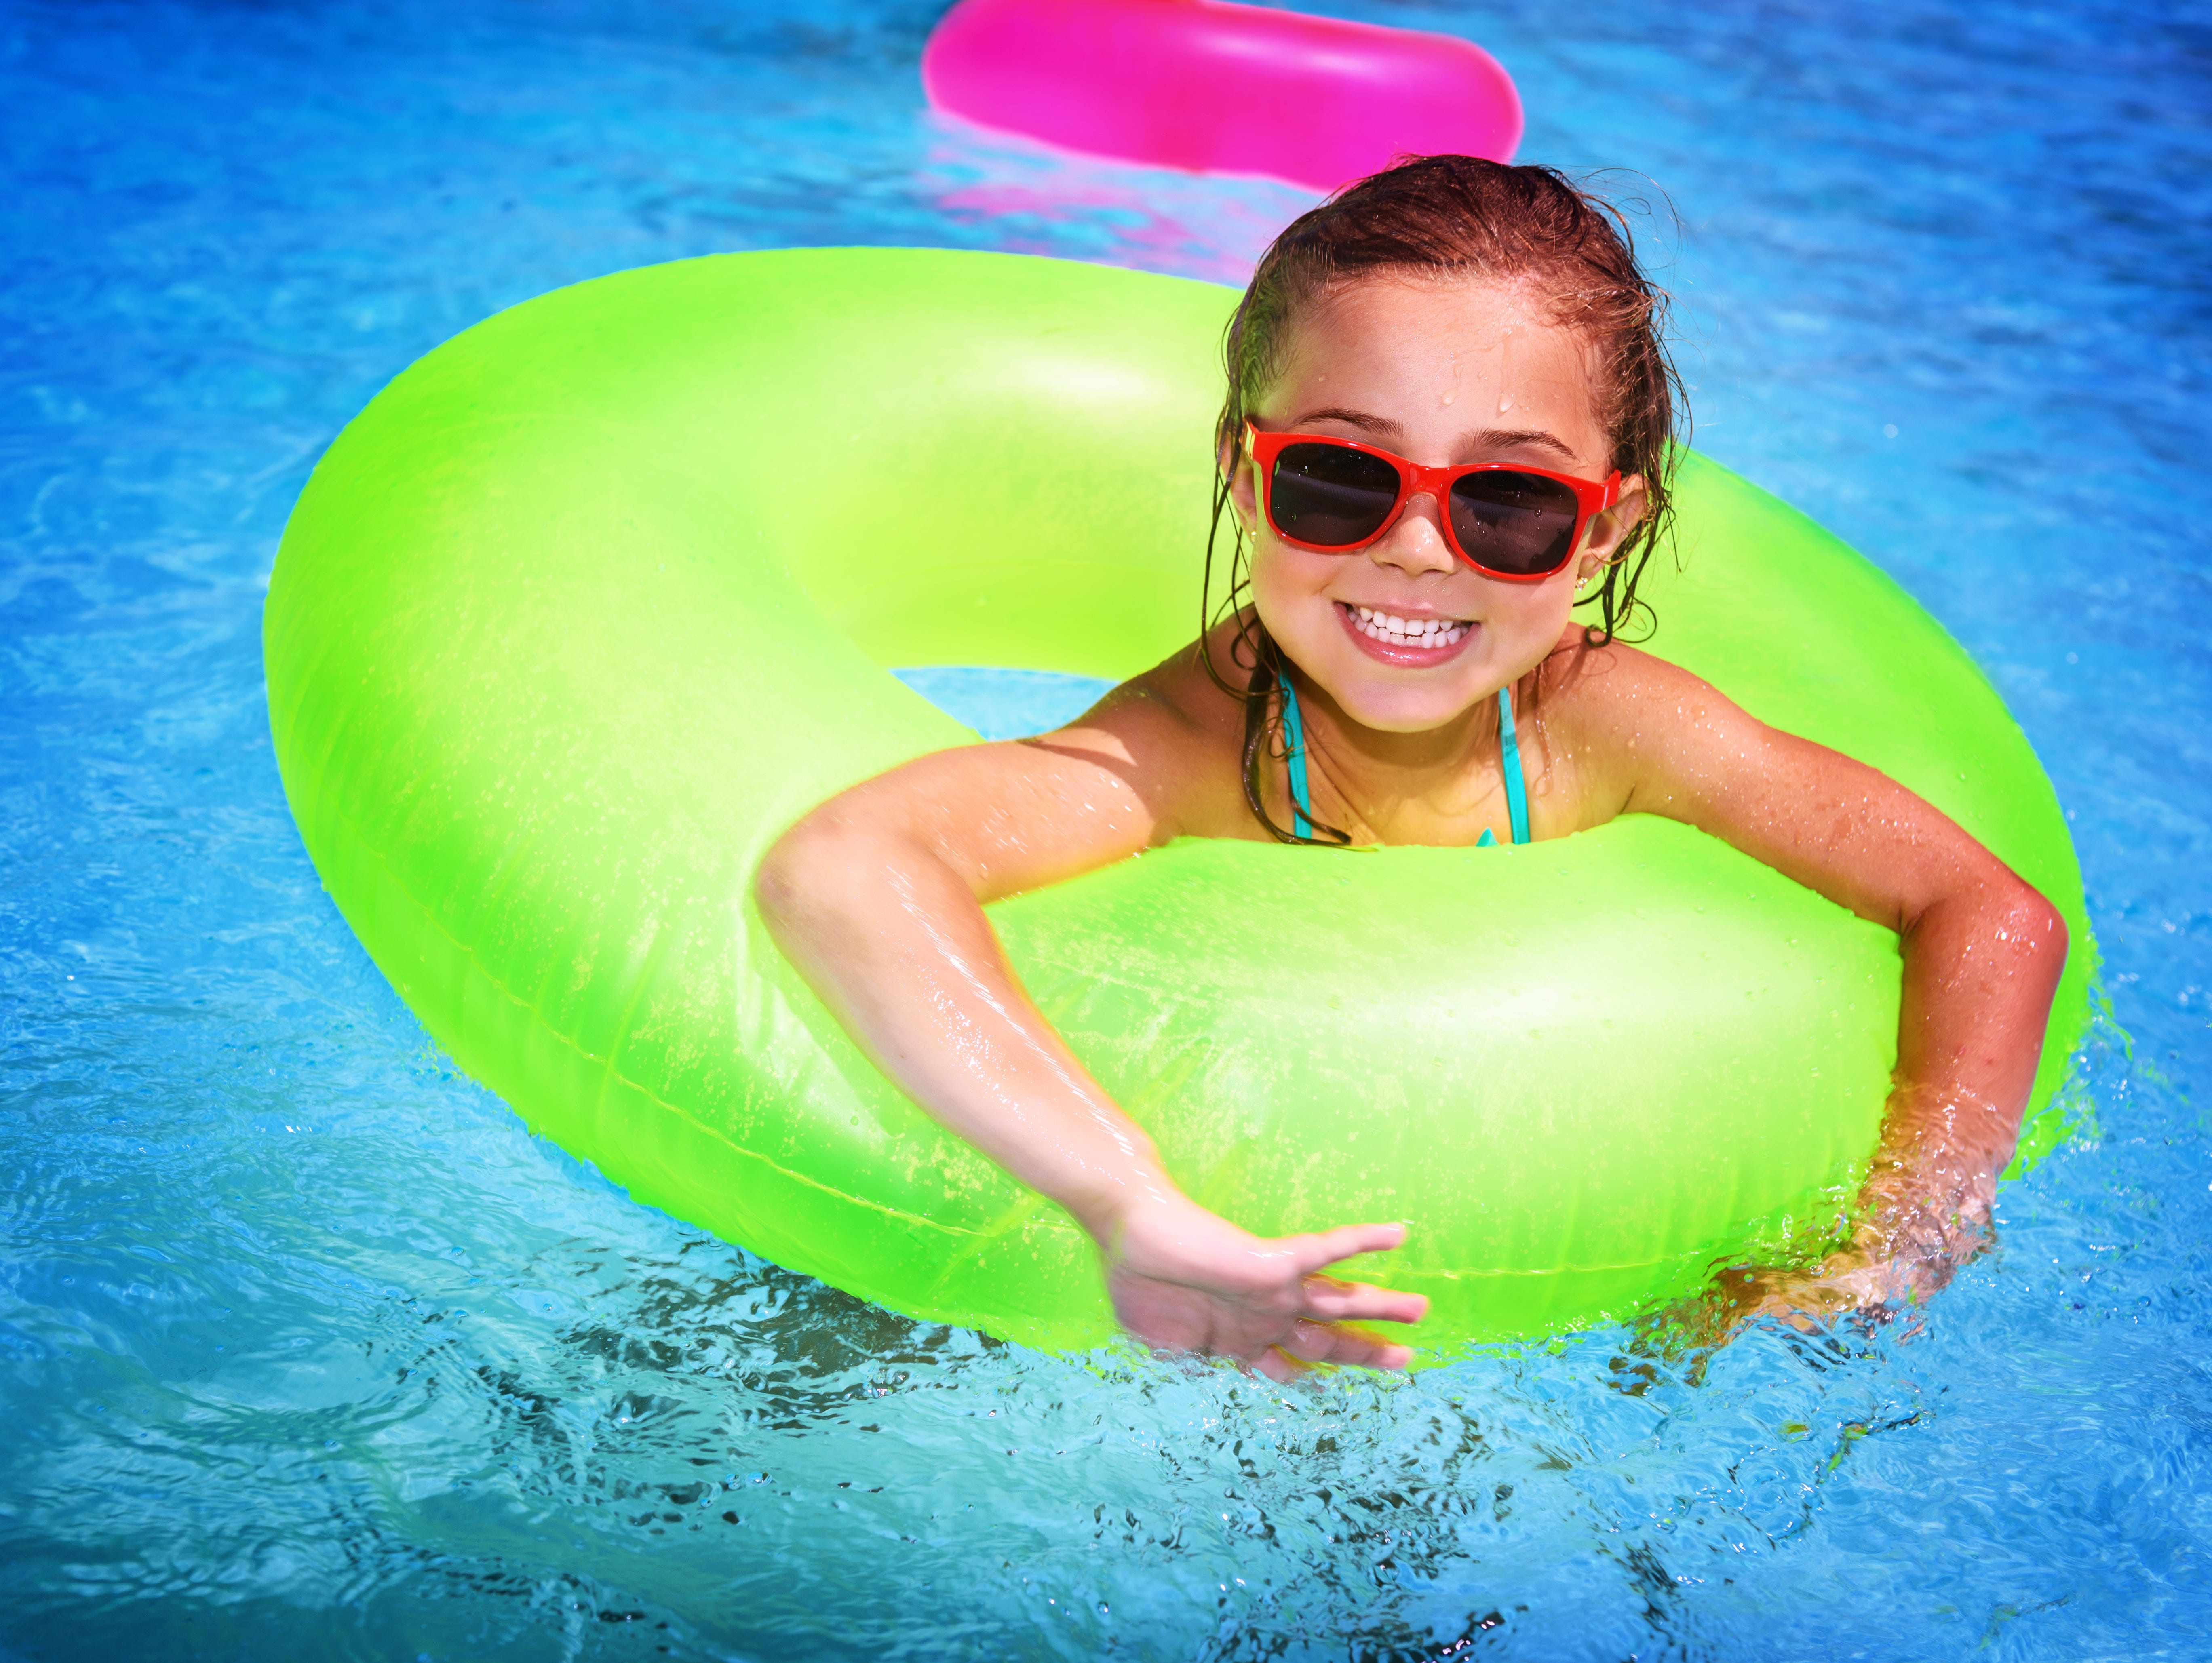 Treat your family to a day at Splash Kingdom! Enter to win now through June 30th/.